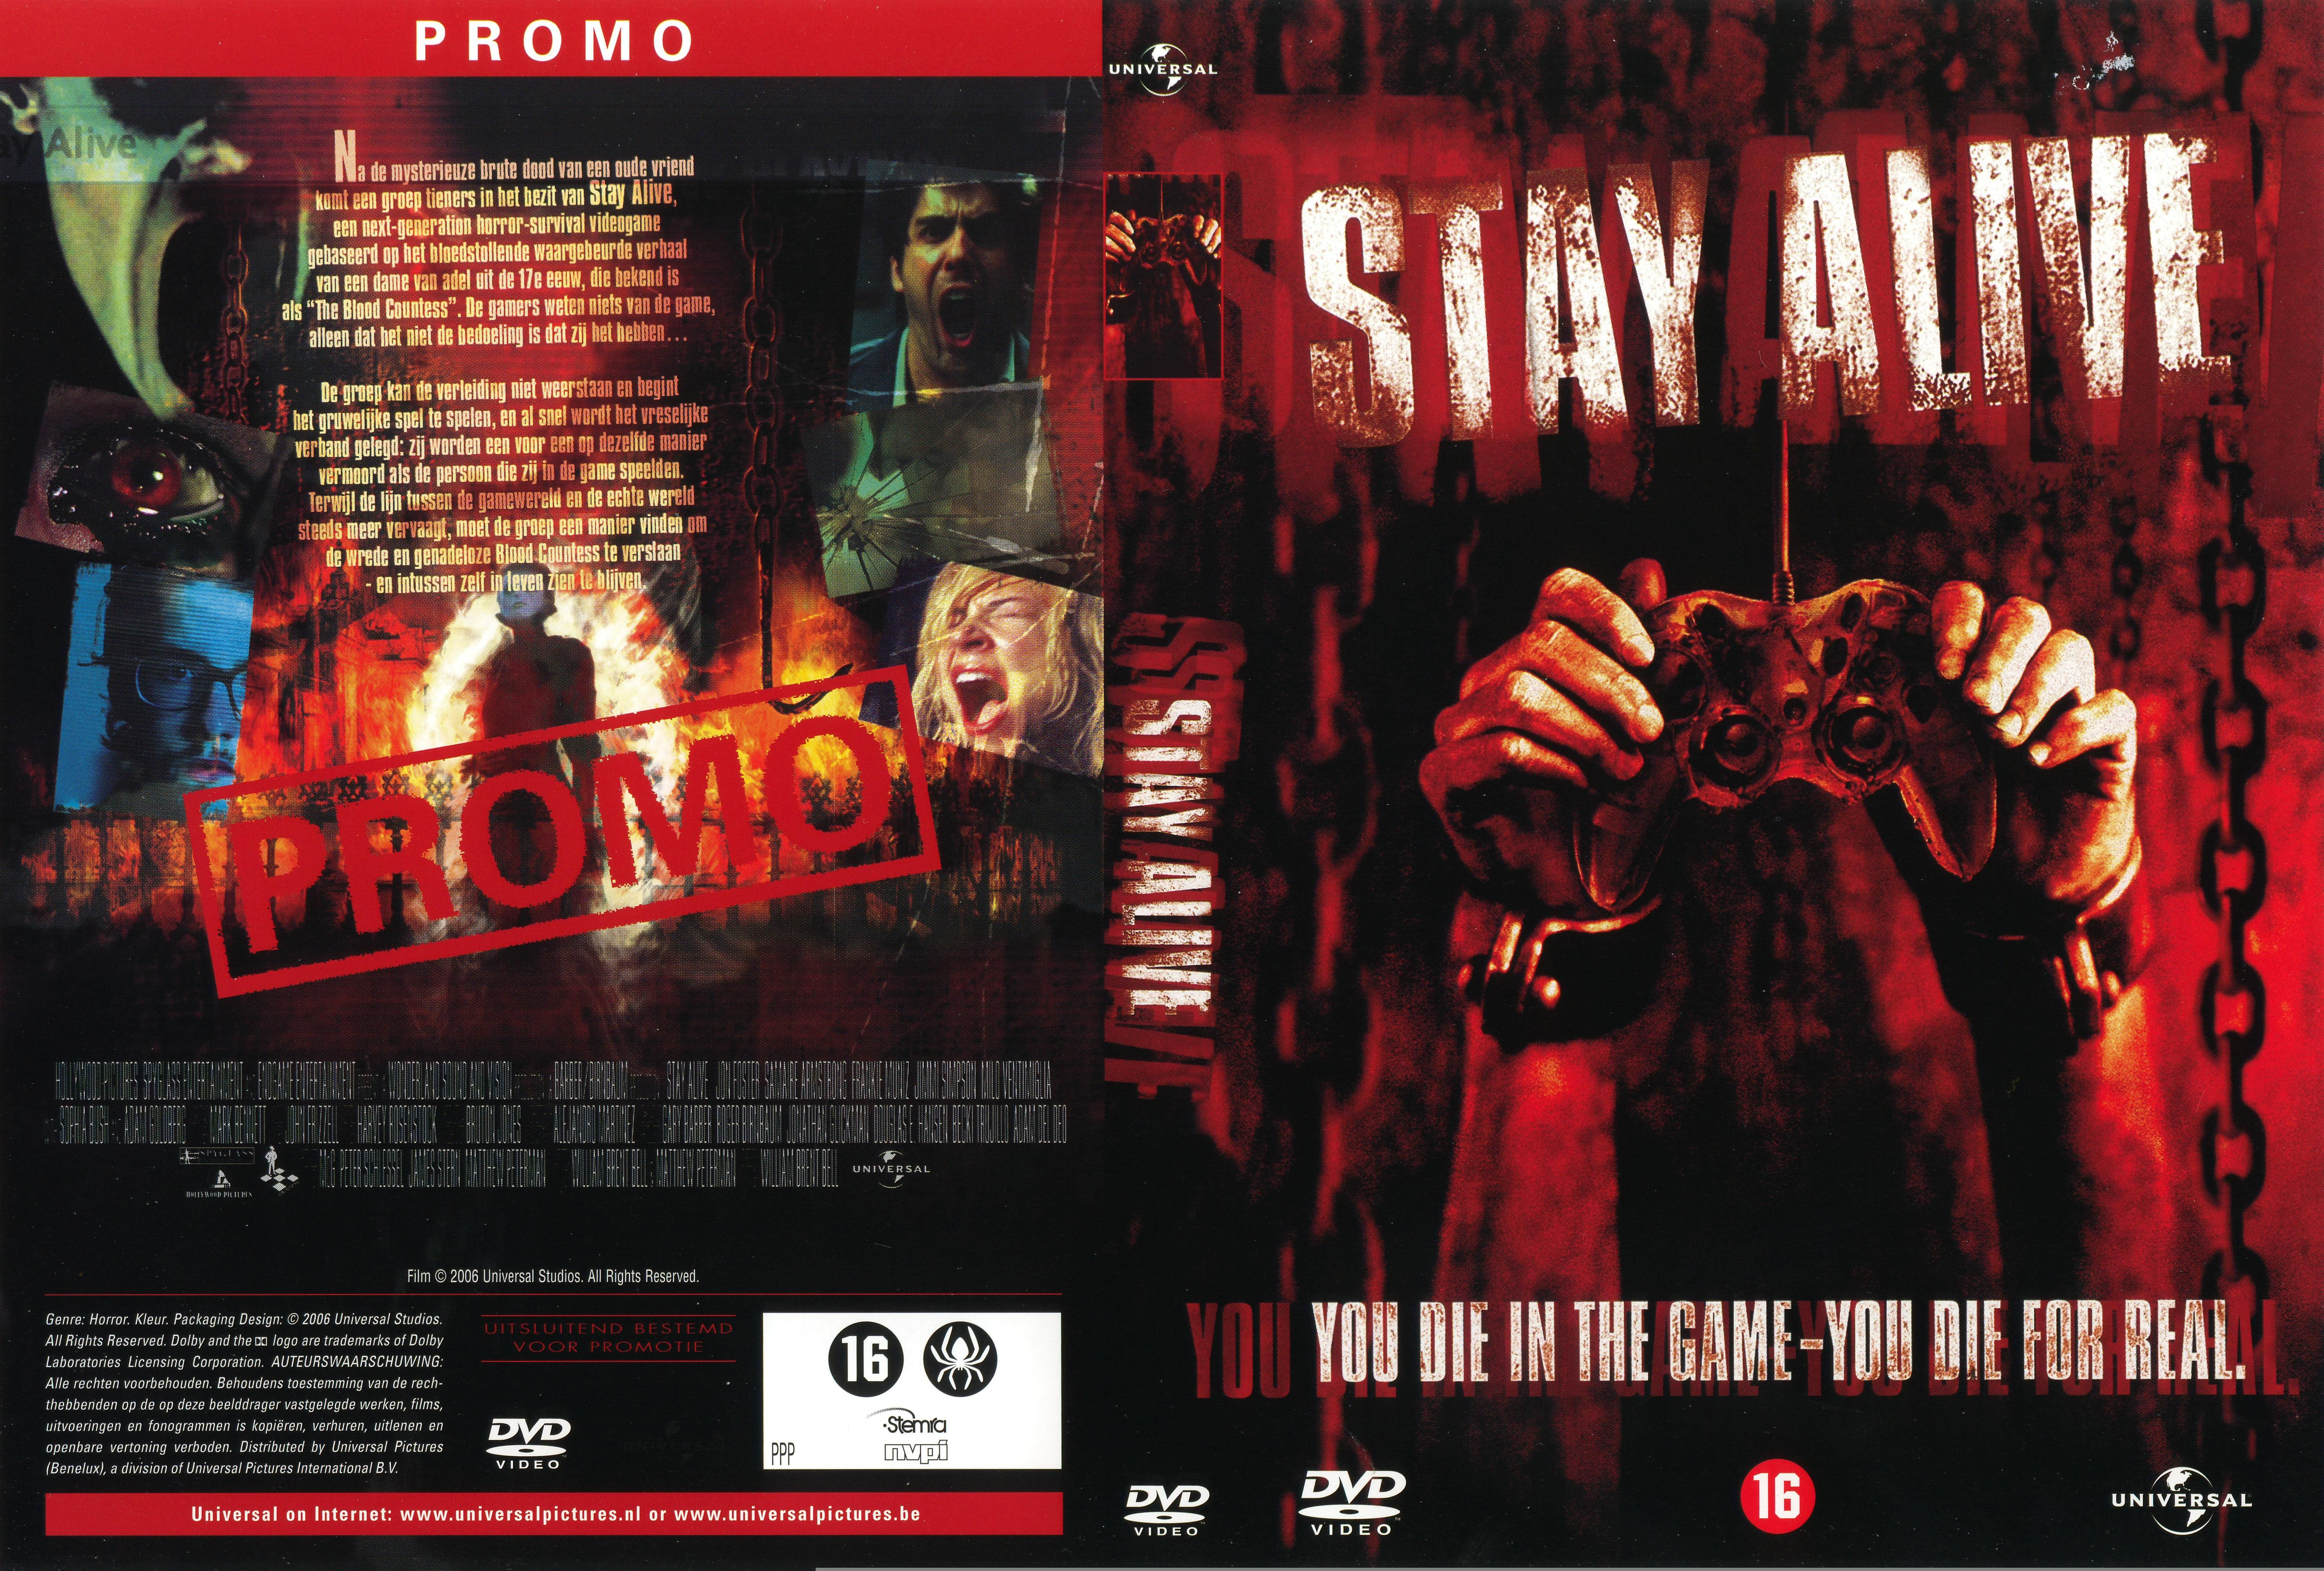 Stay Alive Dvd Nl Custom2 Dvd Covers Cover Century Over 500 000 Album Art Covers For Free